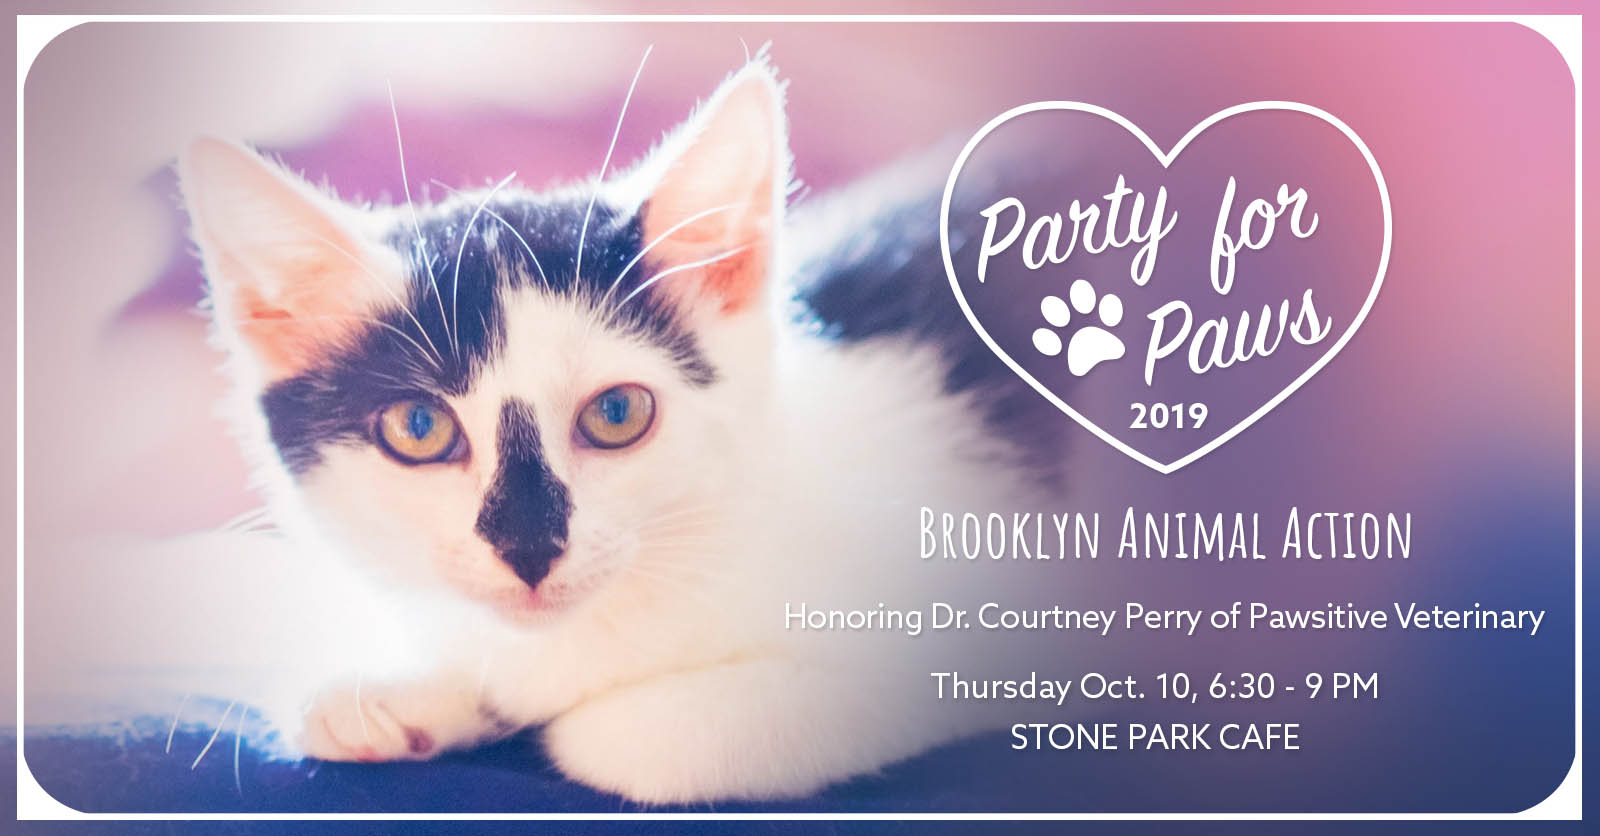 Party-for-Paws-2019-sponsor-v2.jpg